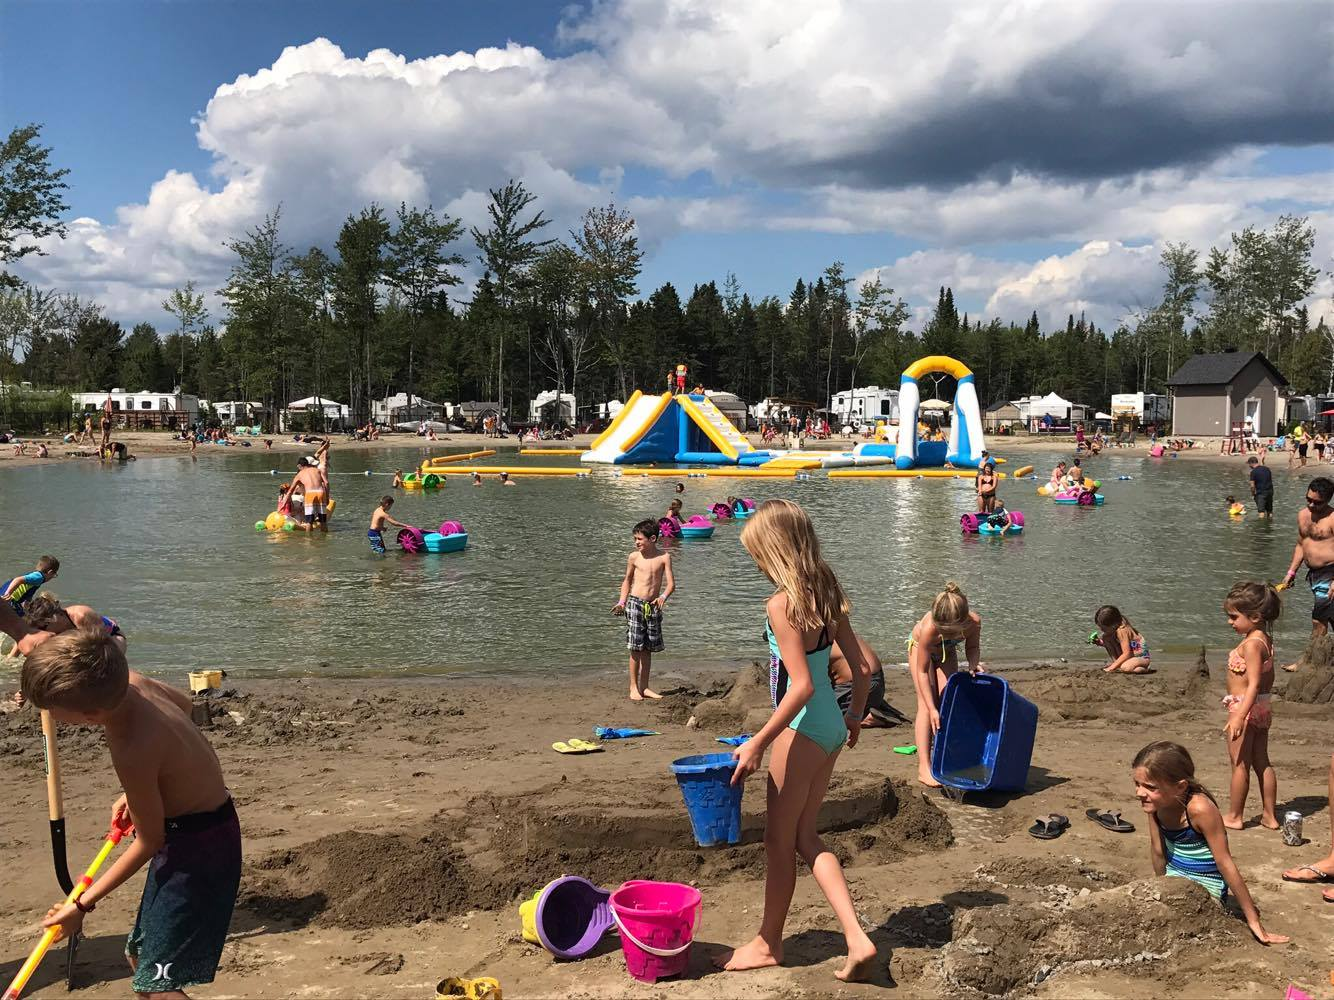 https://www.familizoo.com/ENG/wp-content/uploads/2019/01/beach-party-2017-complexe-atlantide-8.jpg